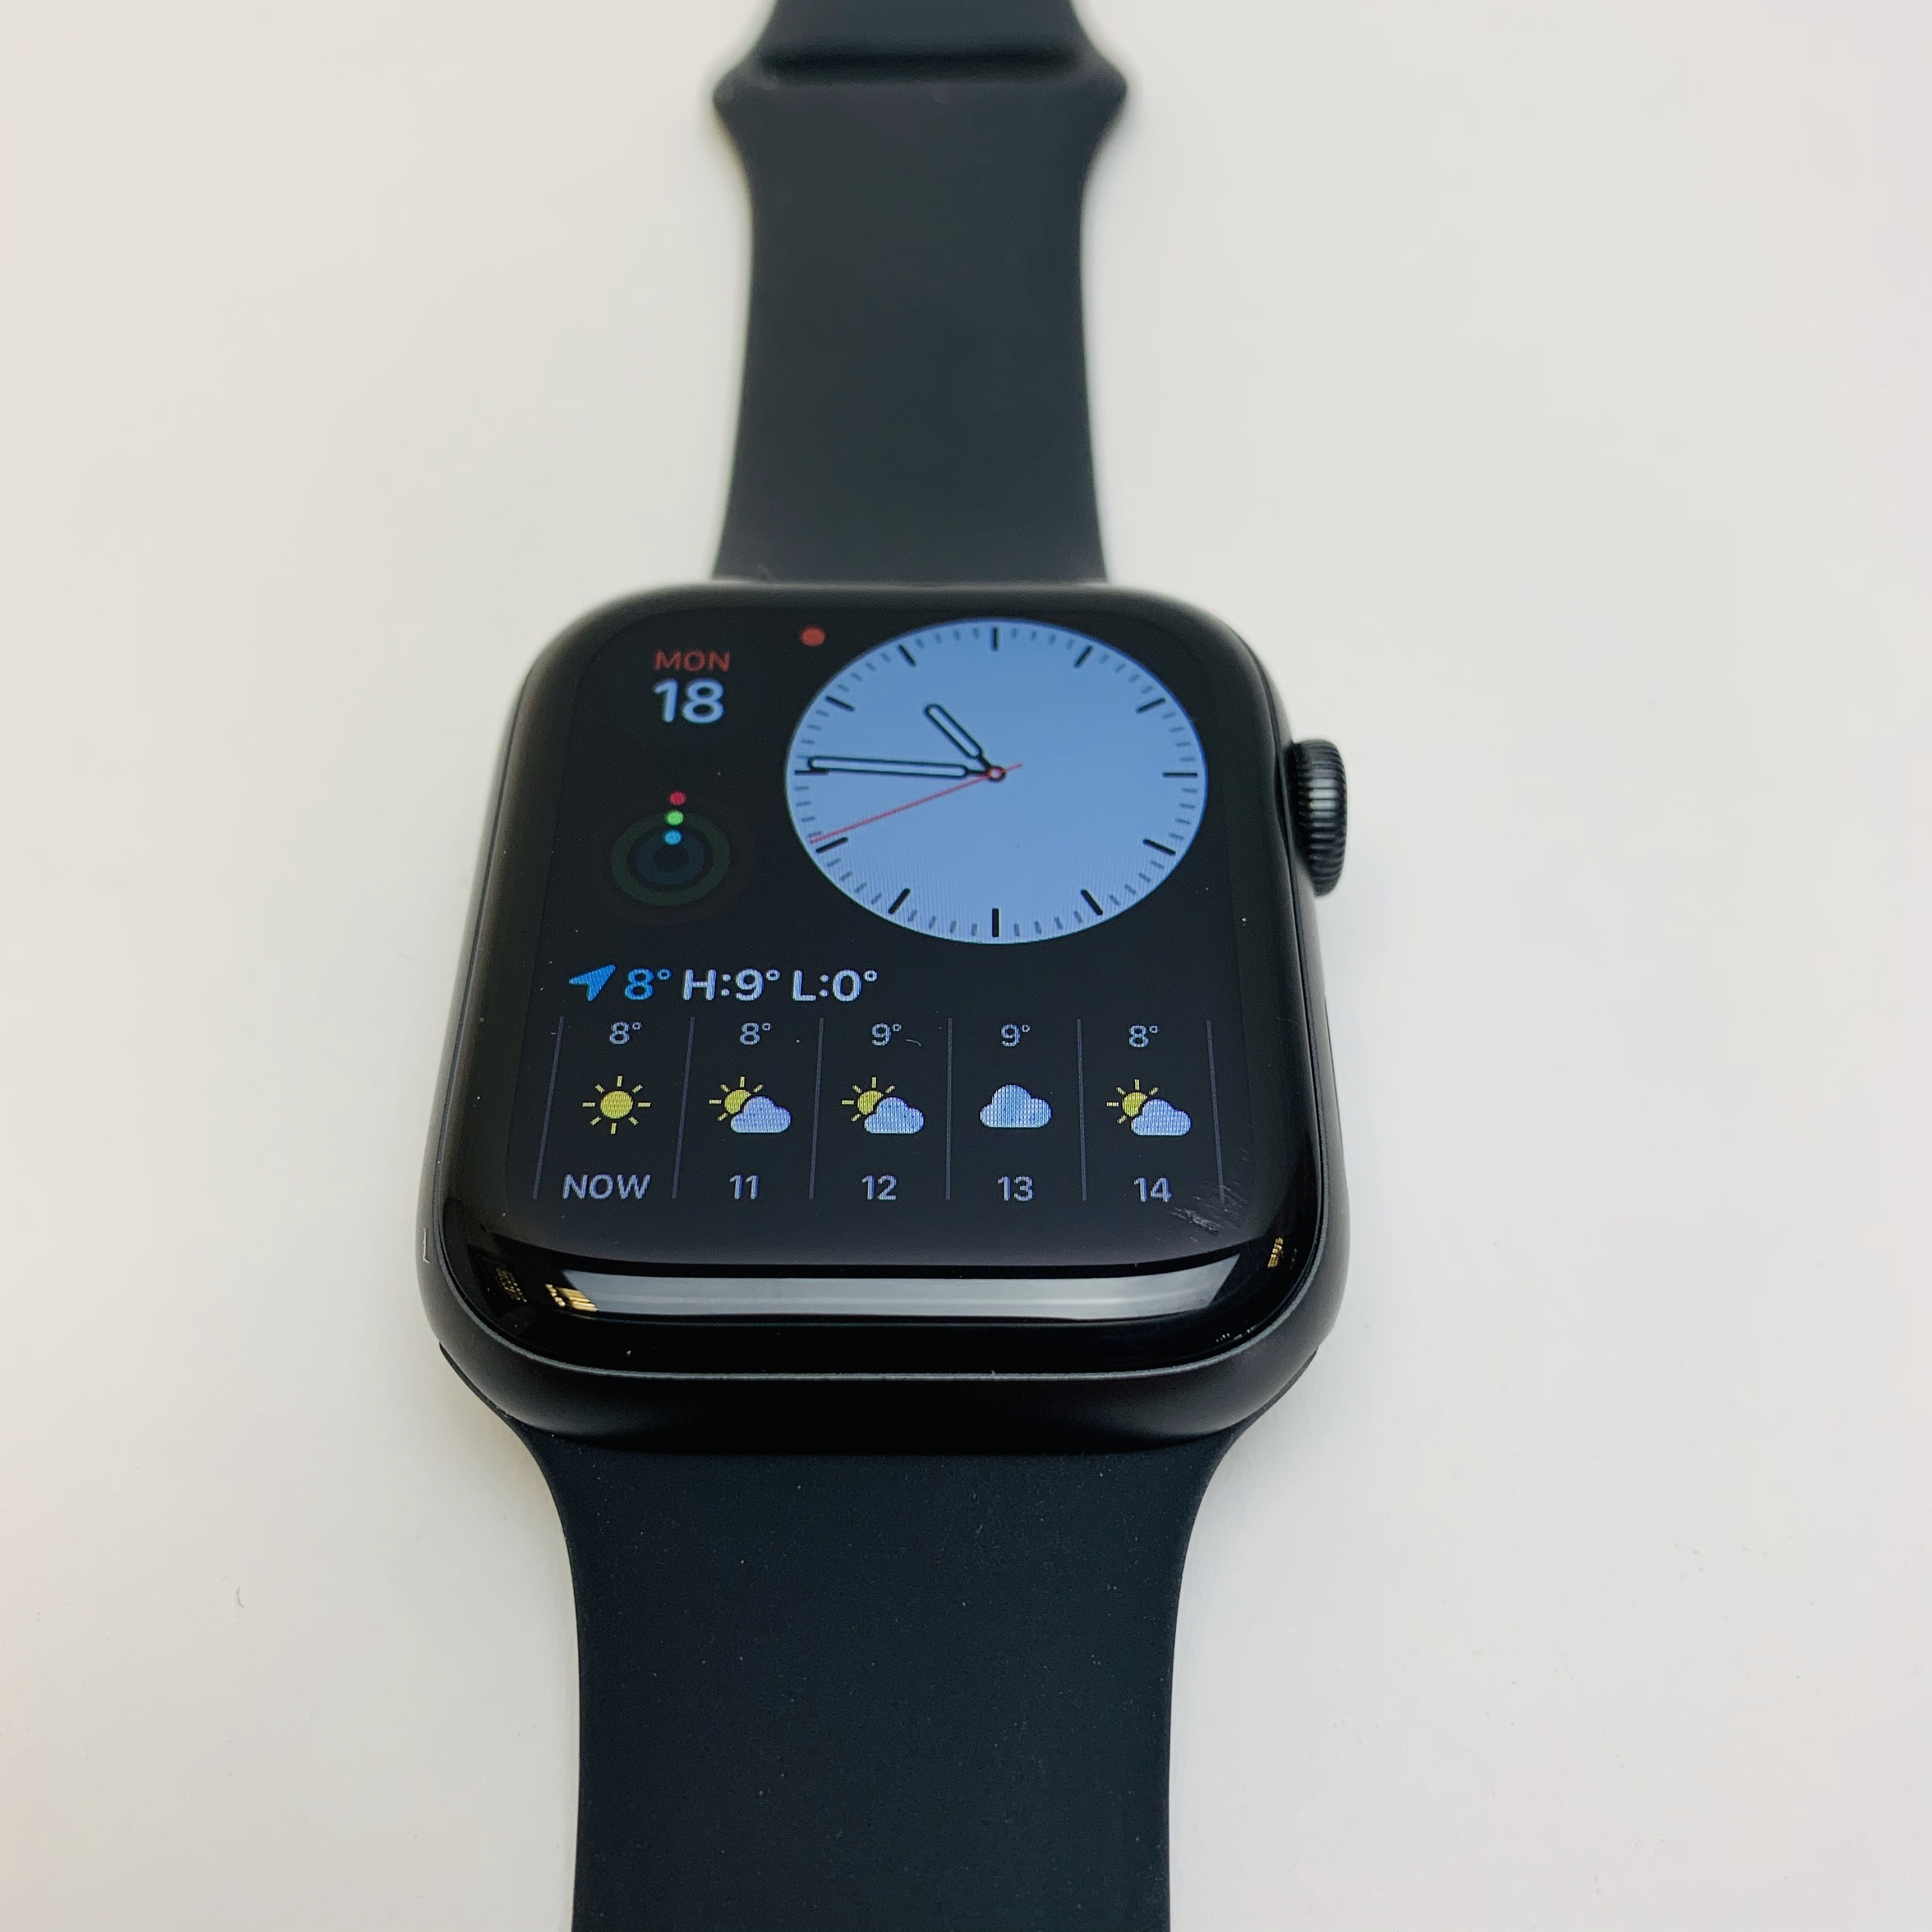 Watch Series 5 Aluminum (44mm), Space Gray, image 3